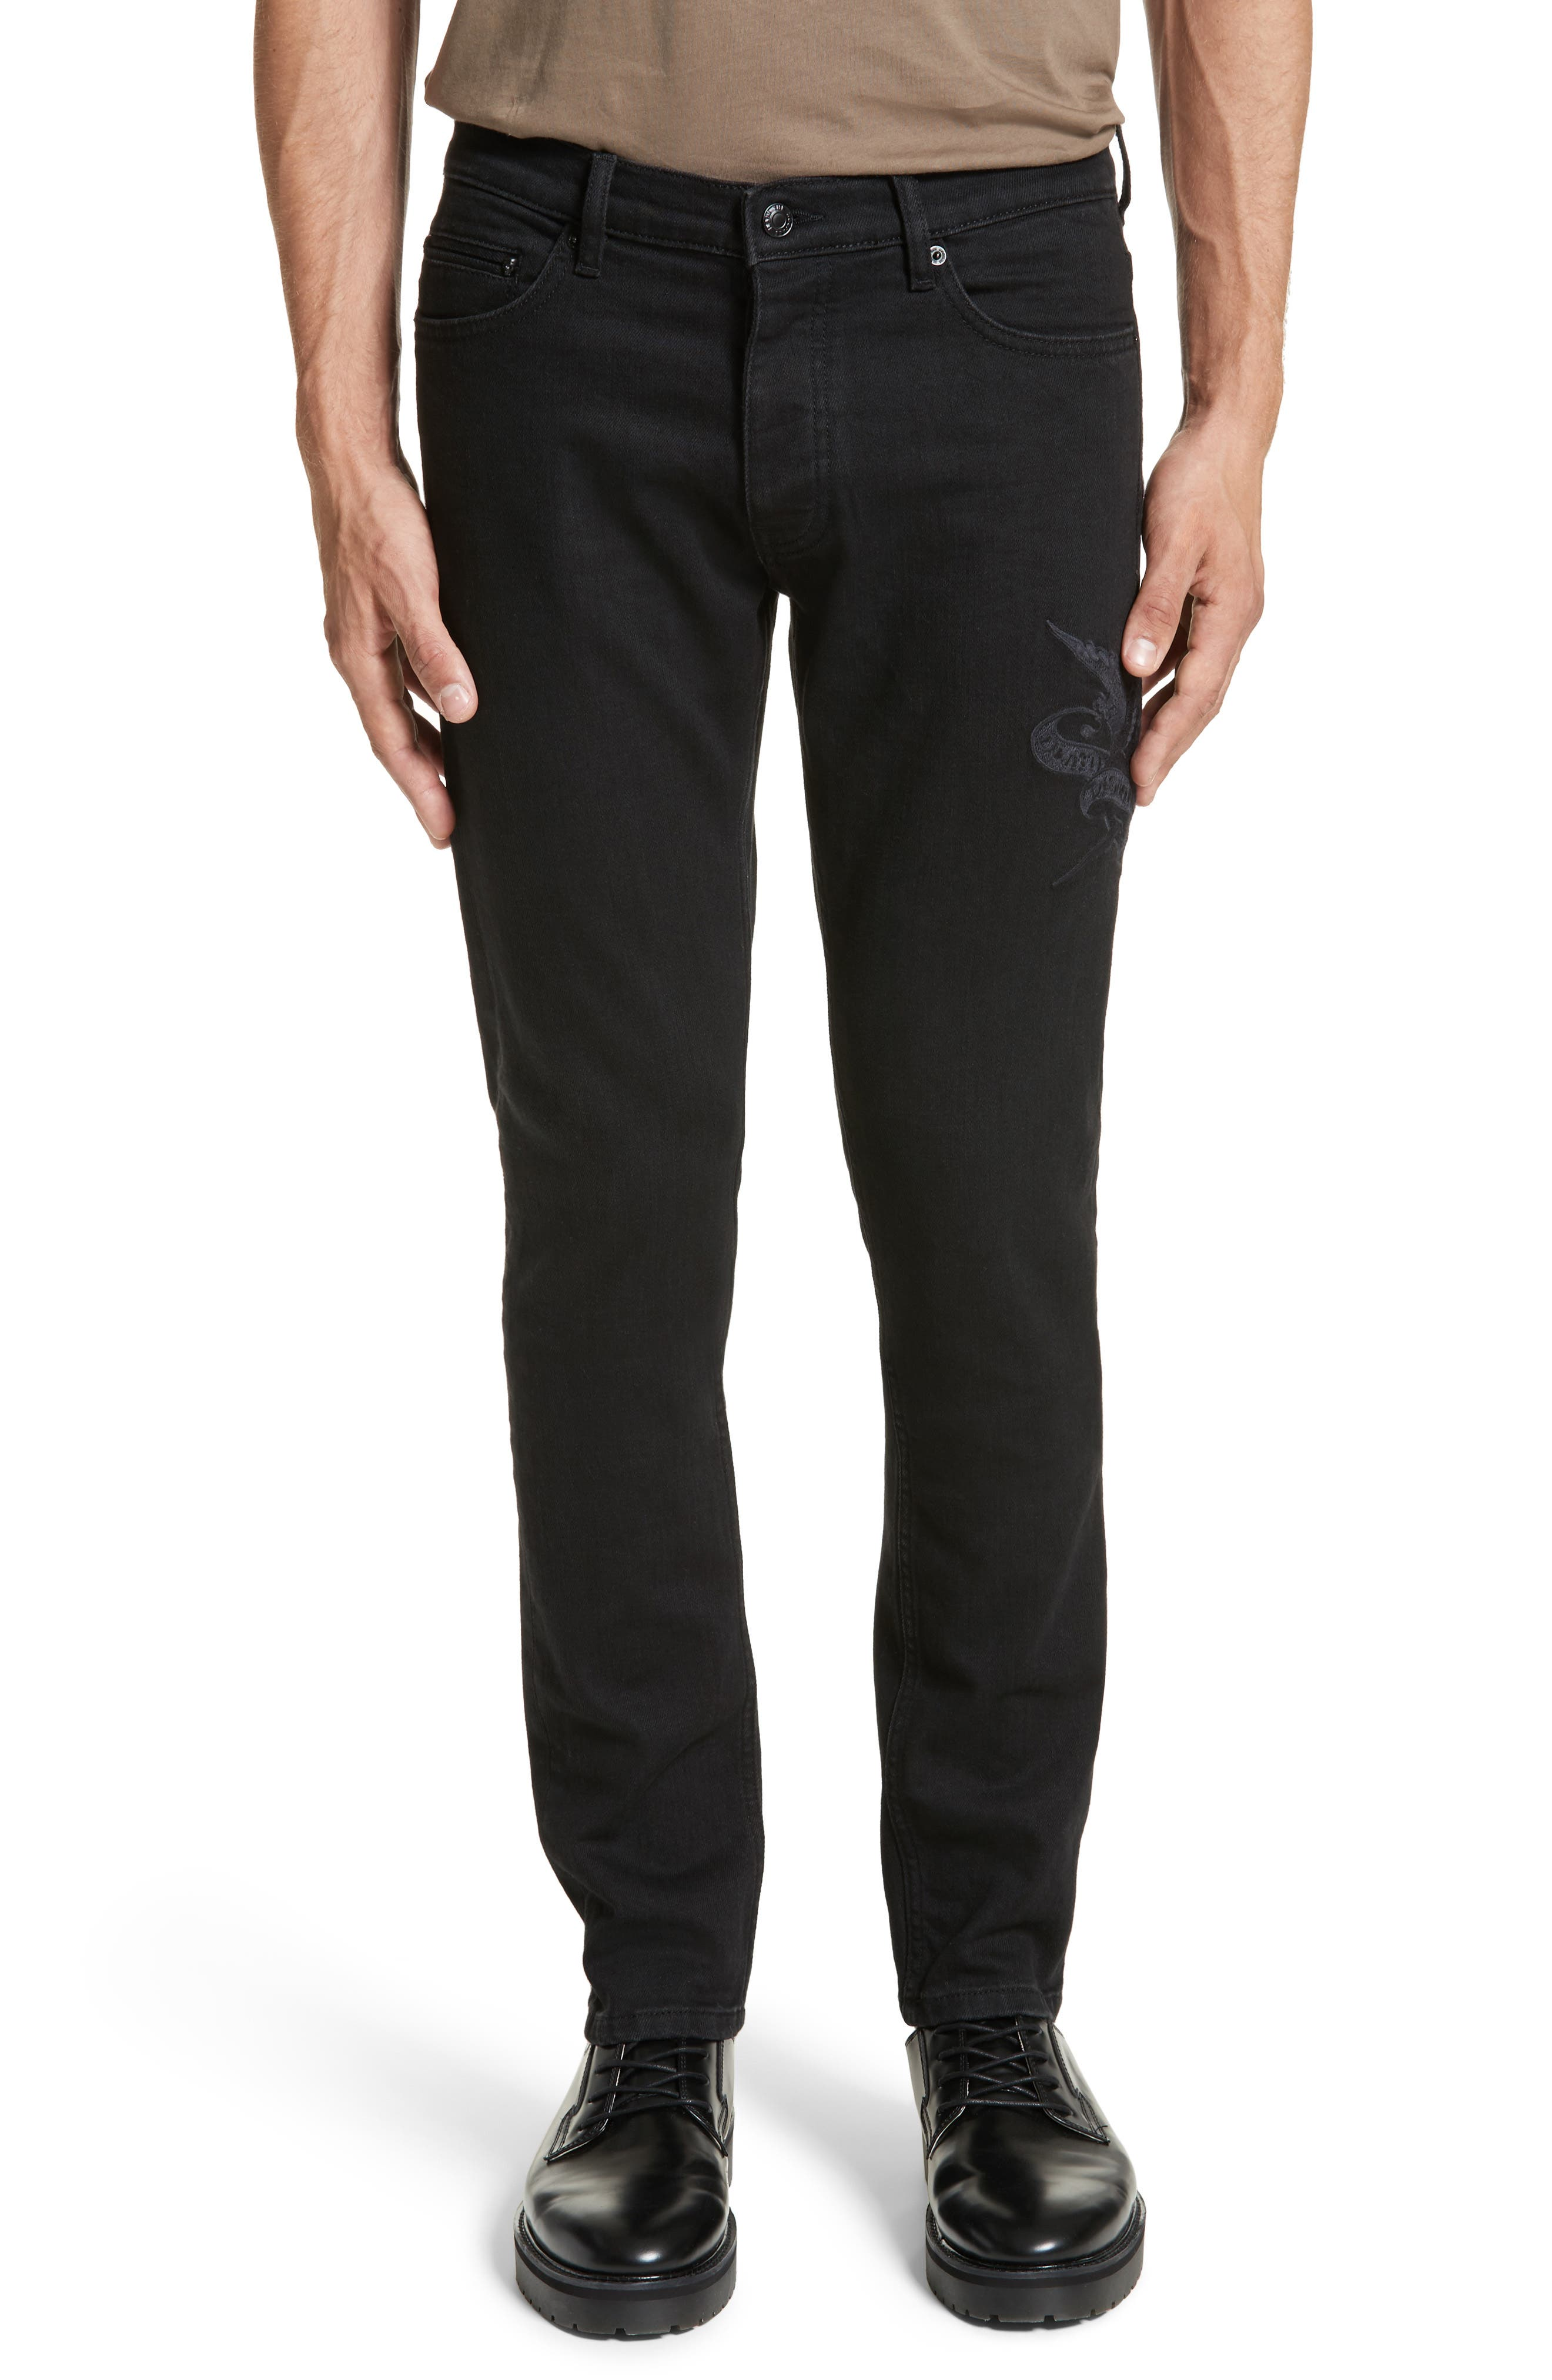 The Kooples Embroidered Slim Fit Jeans